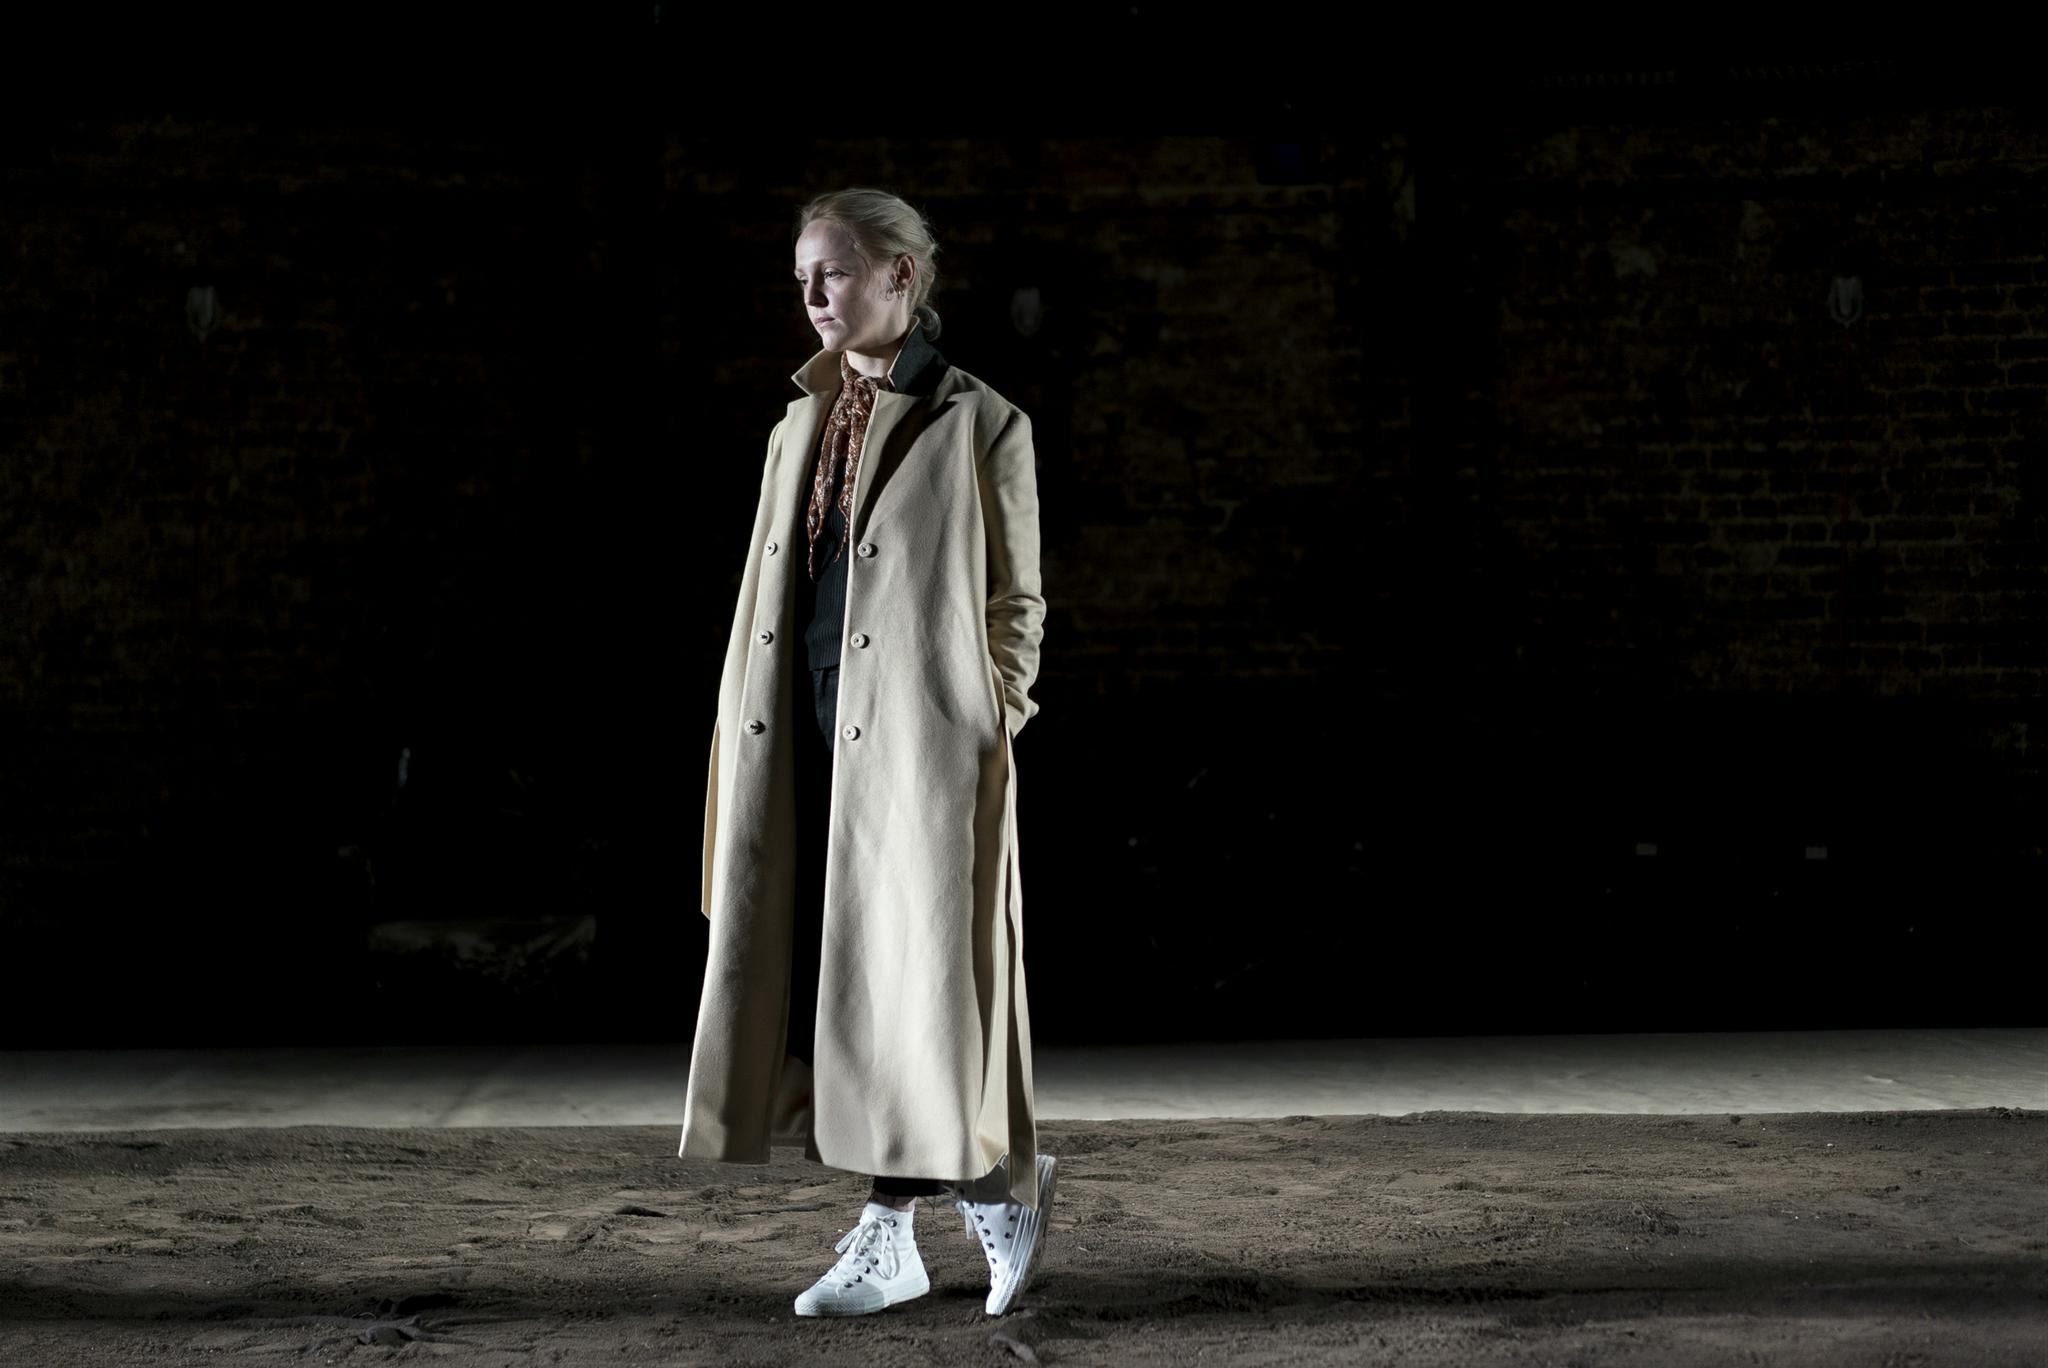 Laura Marling at the Almeida Theatre in London, in November.